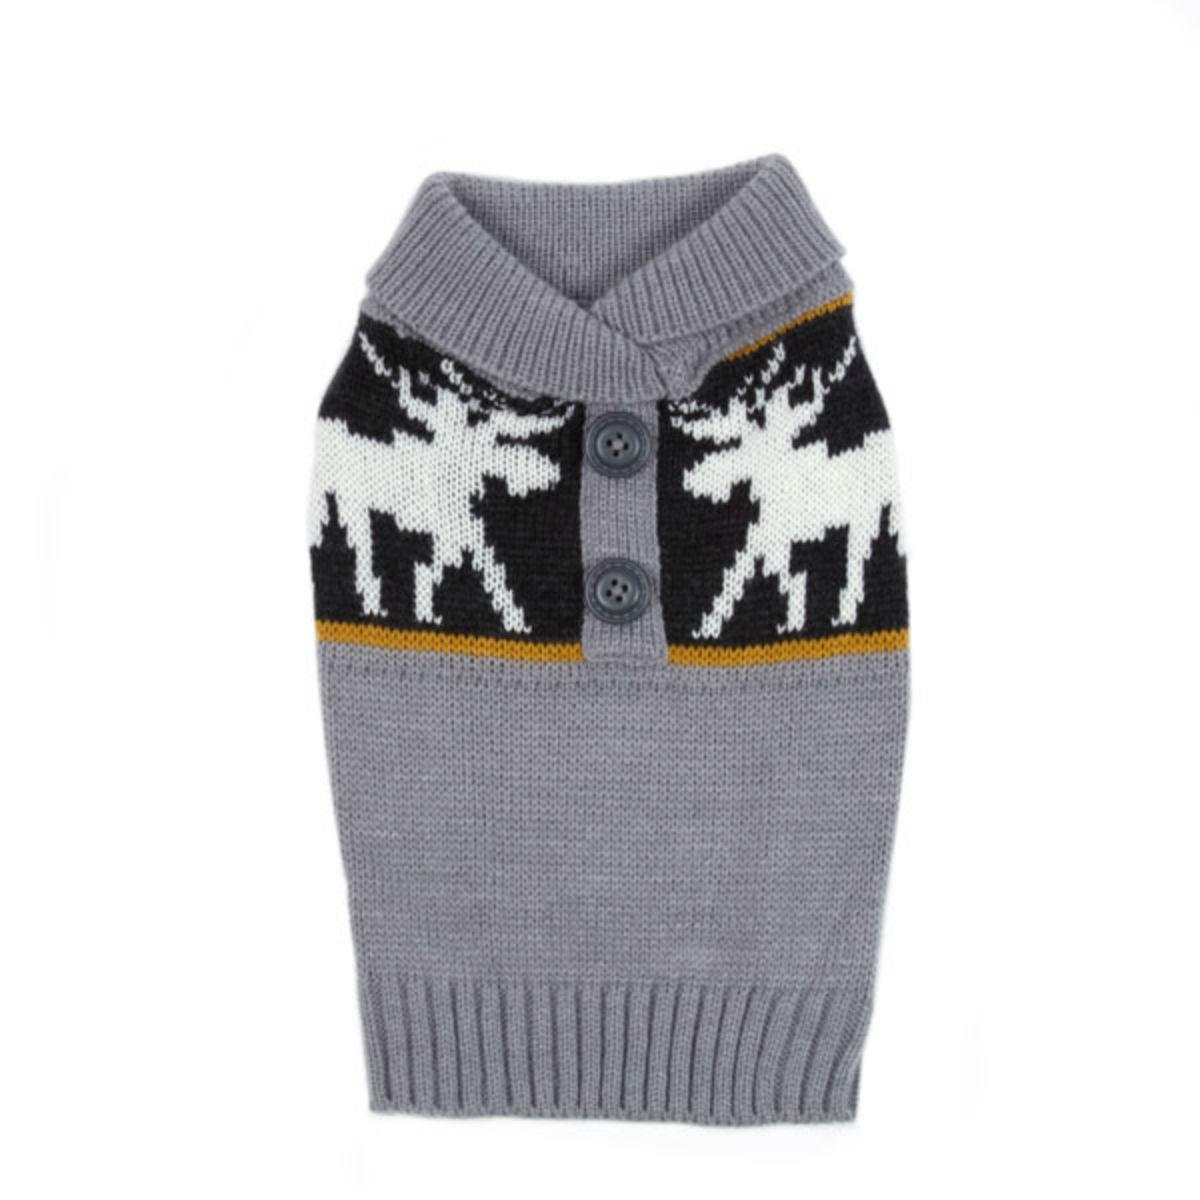 Casual Canine Moose Print Dog Sweater - Gray